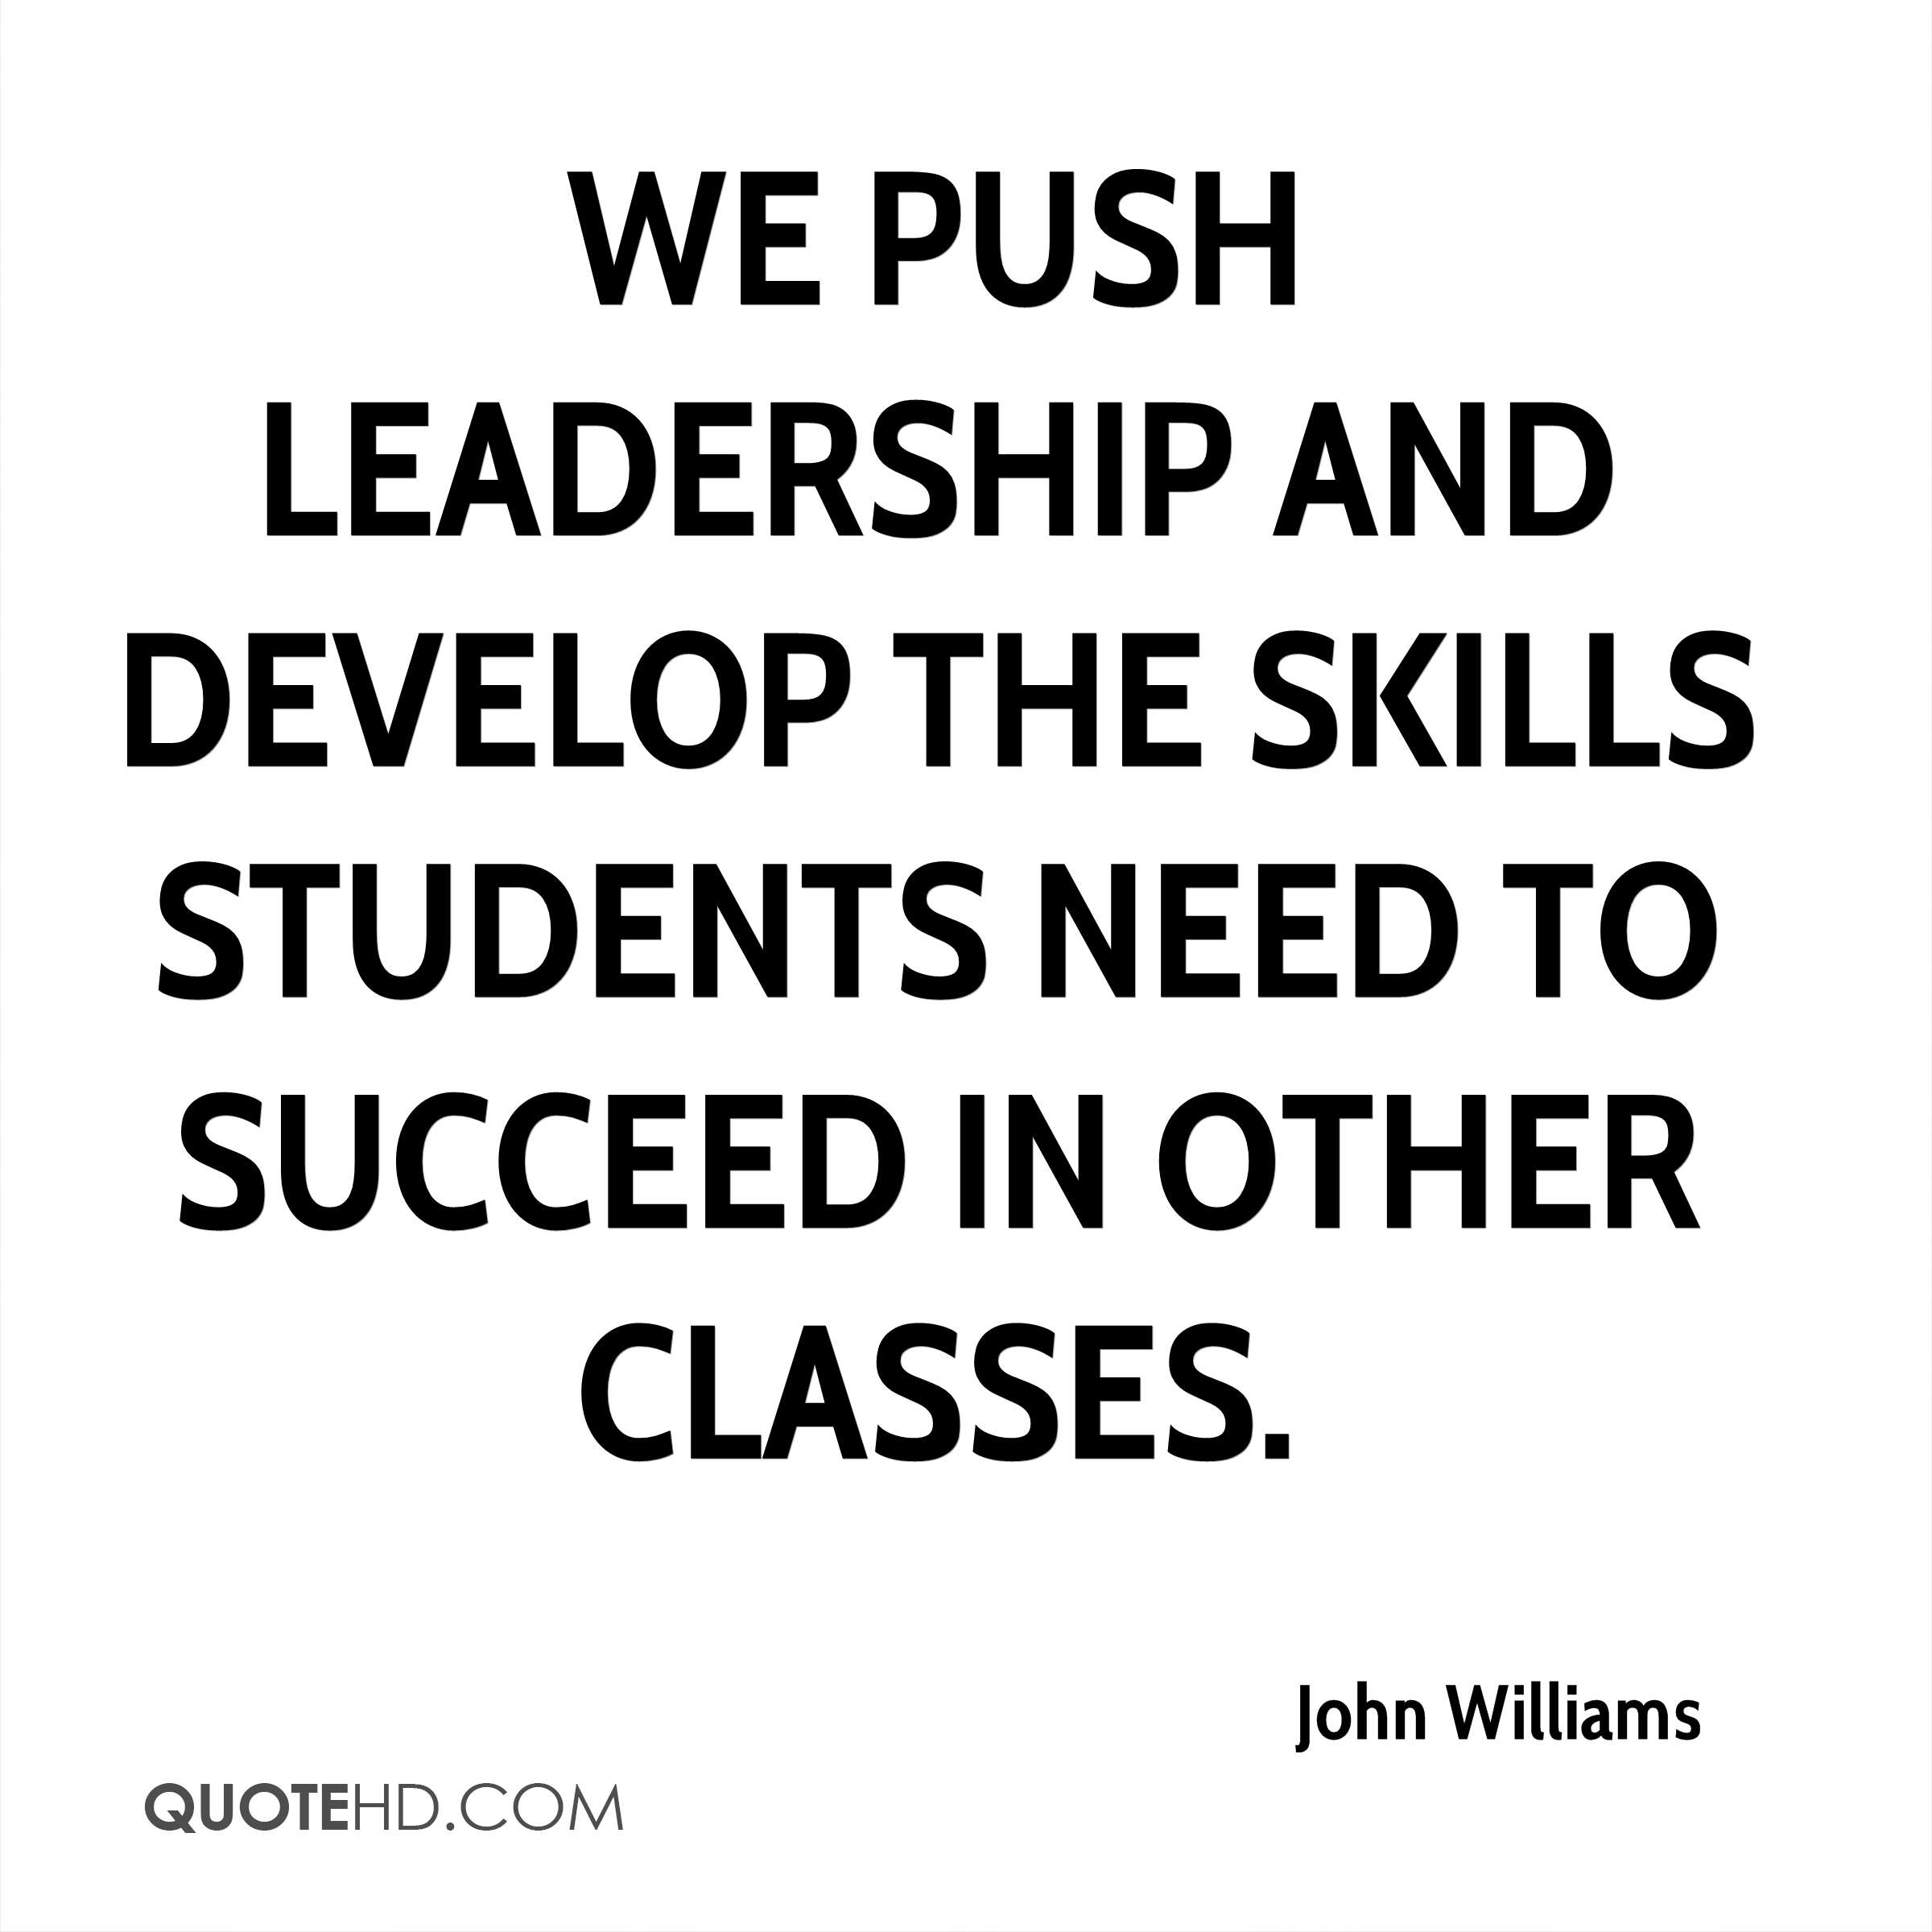 We push leadership and develop the skills students need to succeed in other classes.